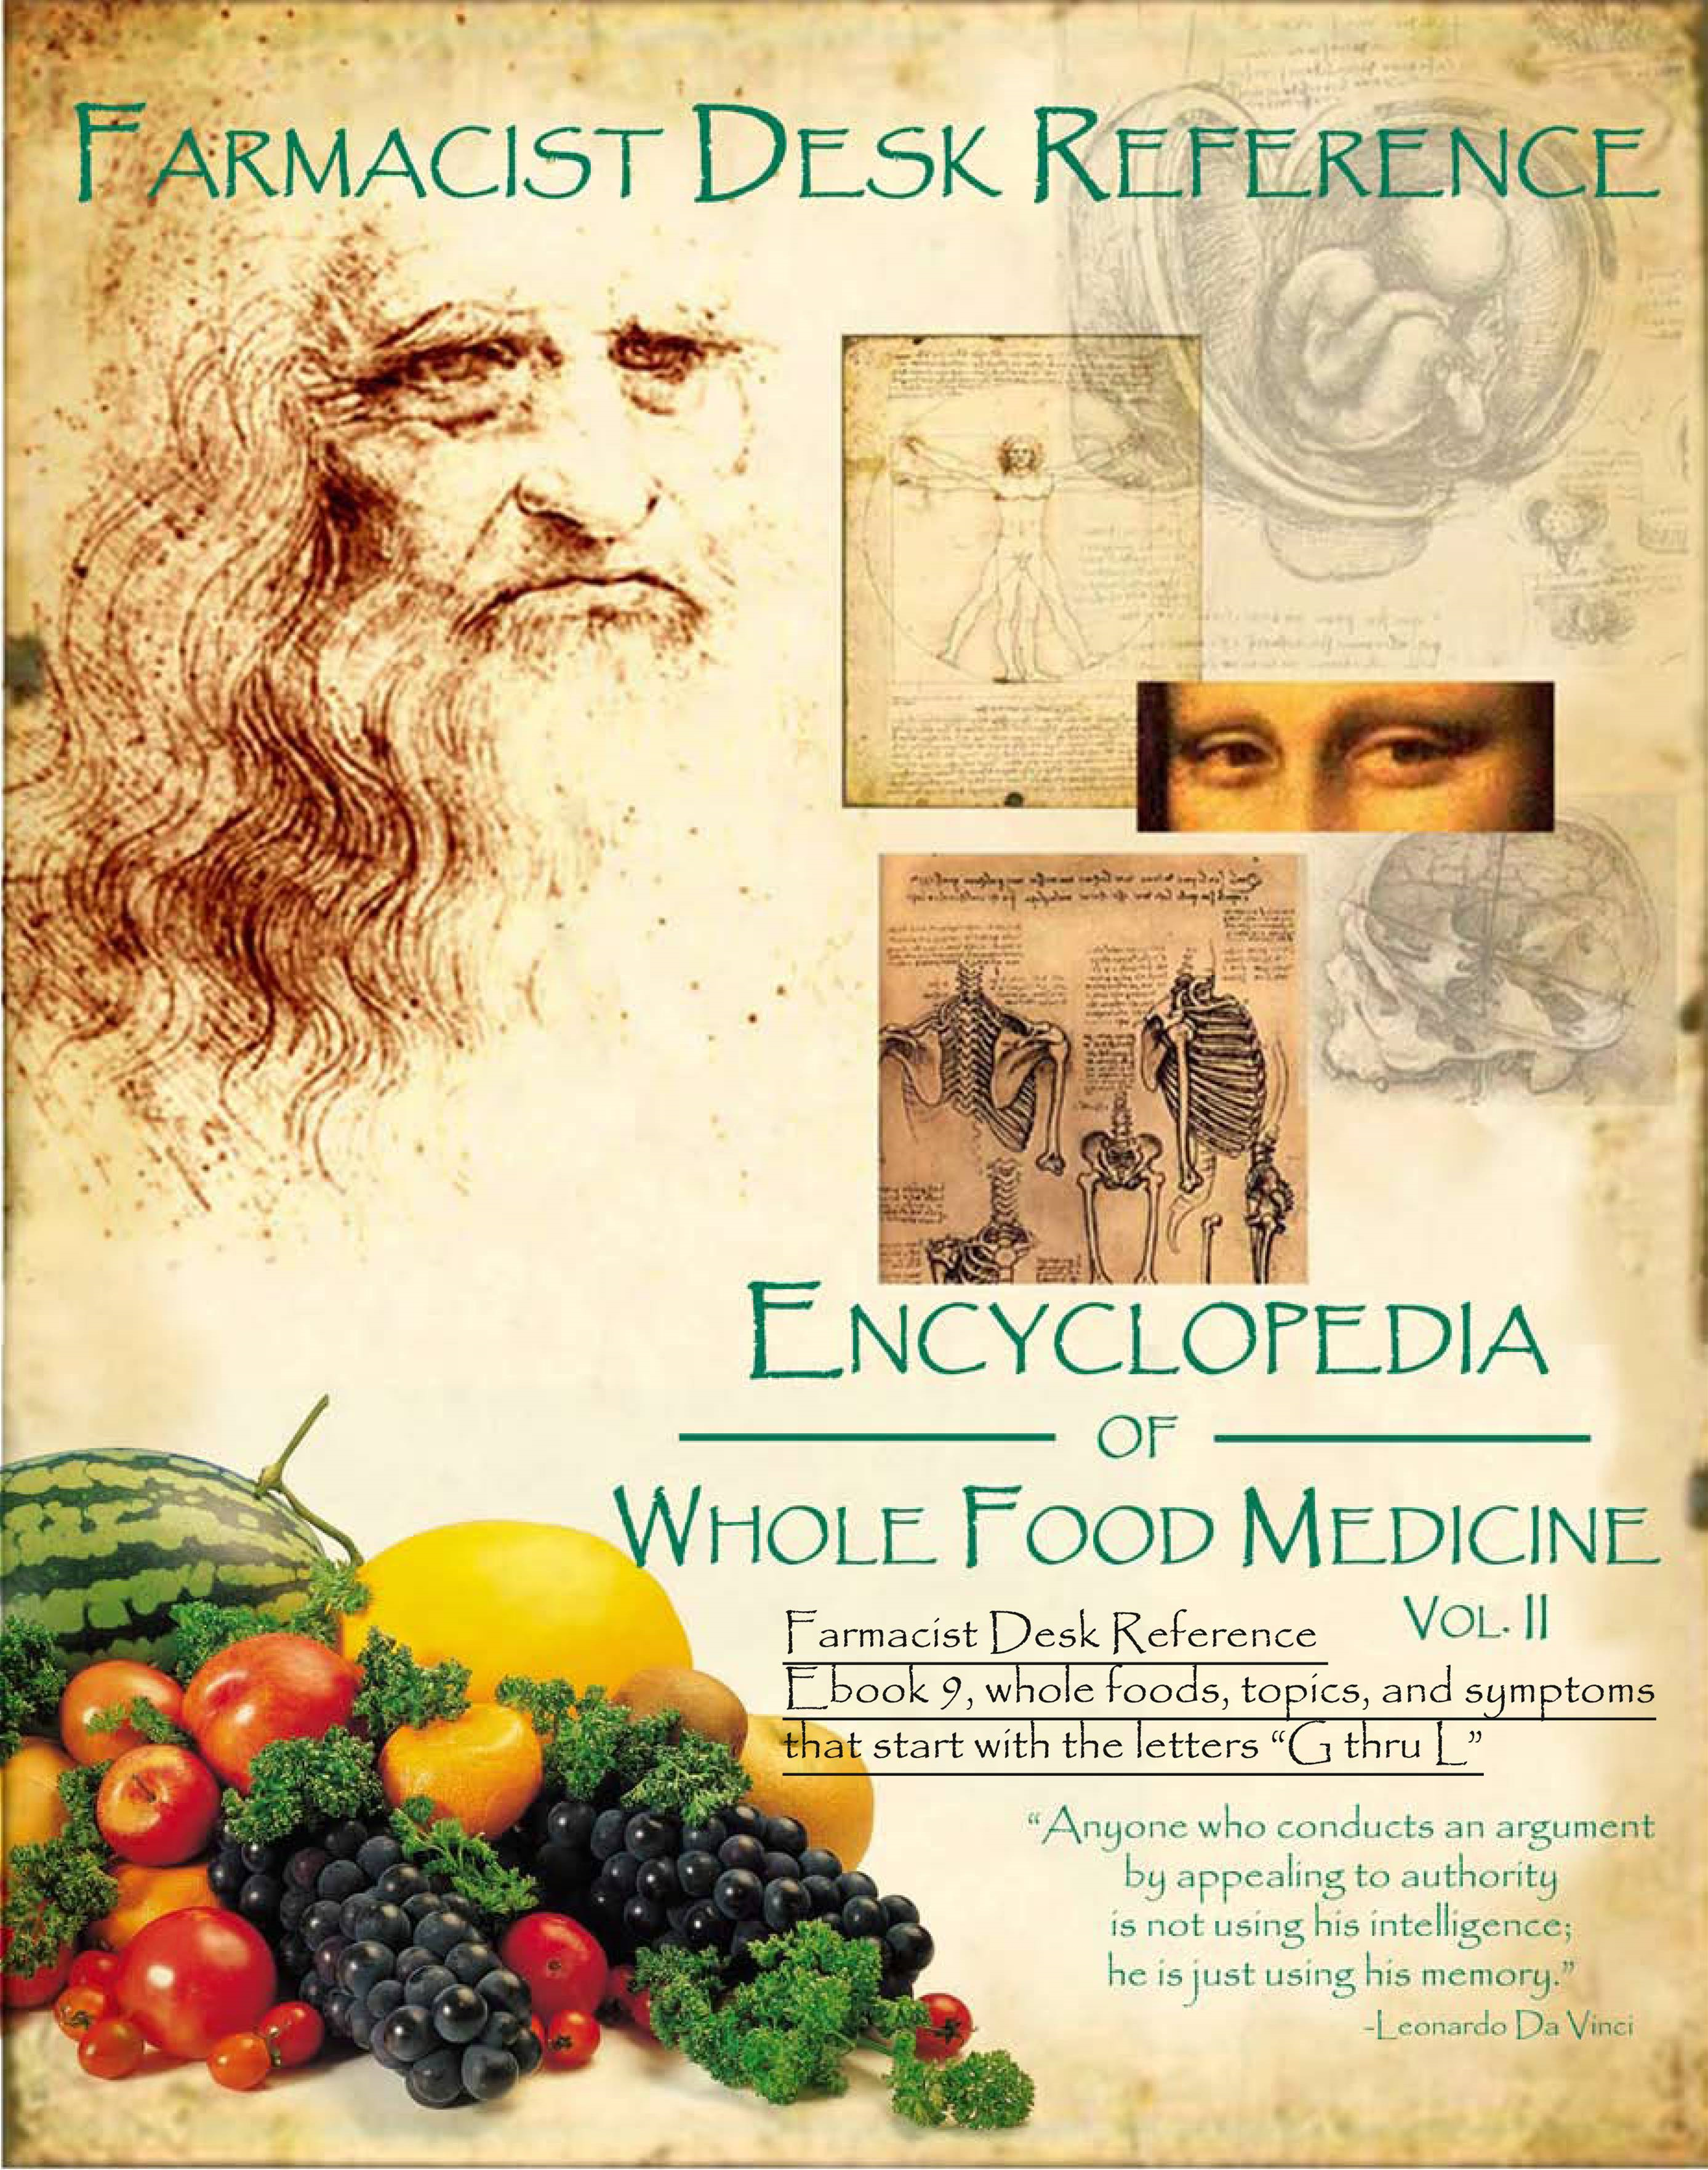 Farmacist Desk Reference Ebook 9, Whole Foods and topics that start with the letters G thru L: Farmacist Desk Reference E book series By: Don Tolman